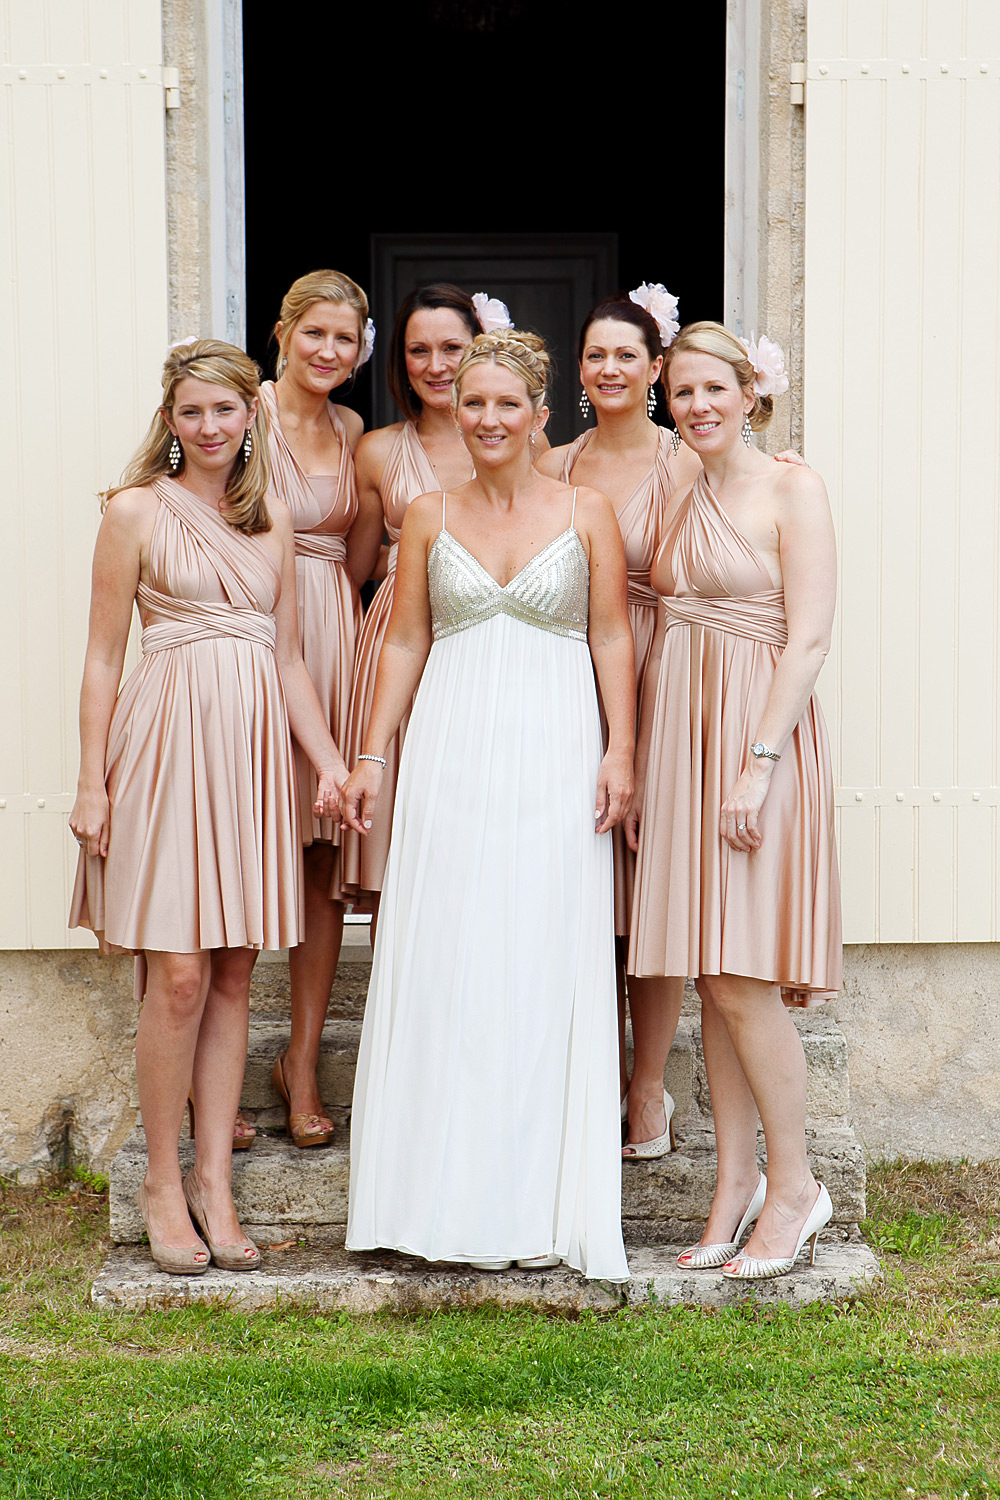 Wedding party at Chateaux Soulac, France